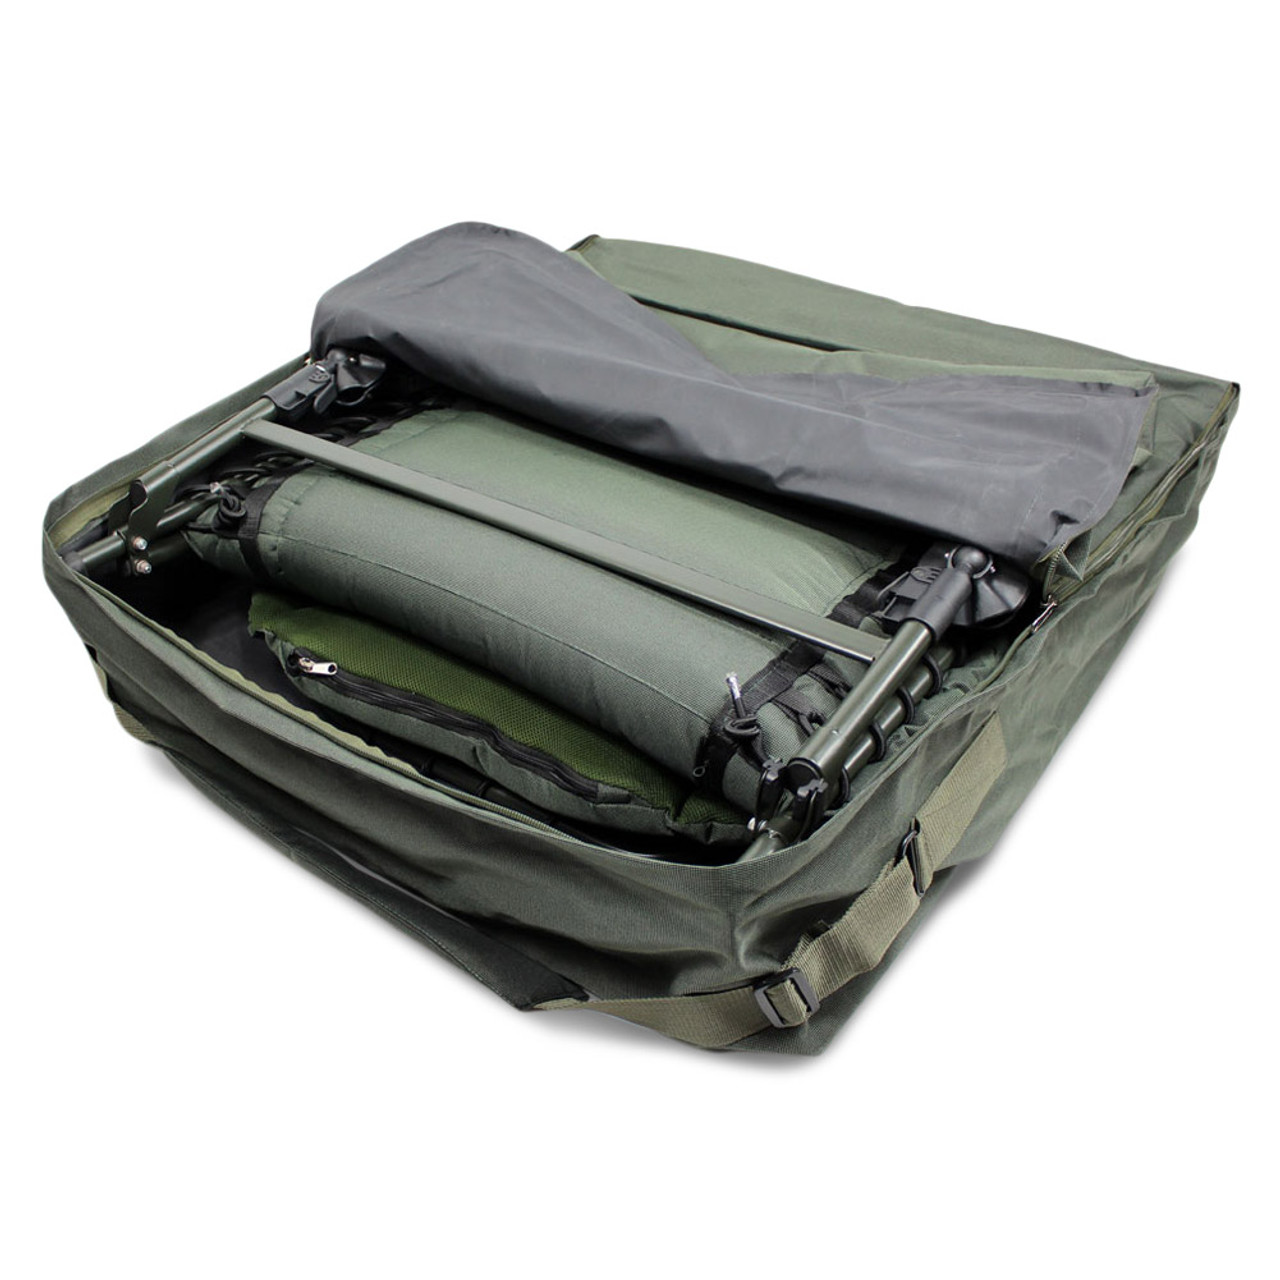 fishing chair carry bags booster for toddler abode deluxe padded carp camping bedchair bag